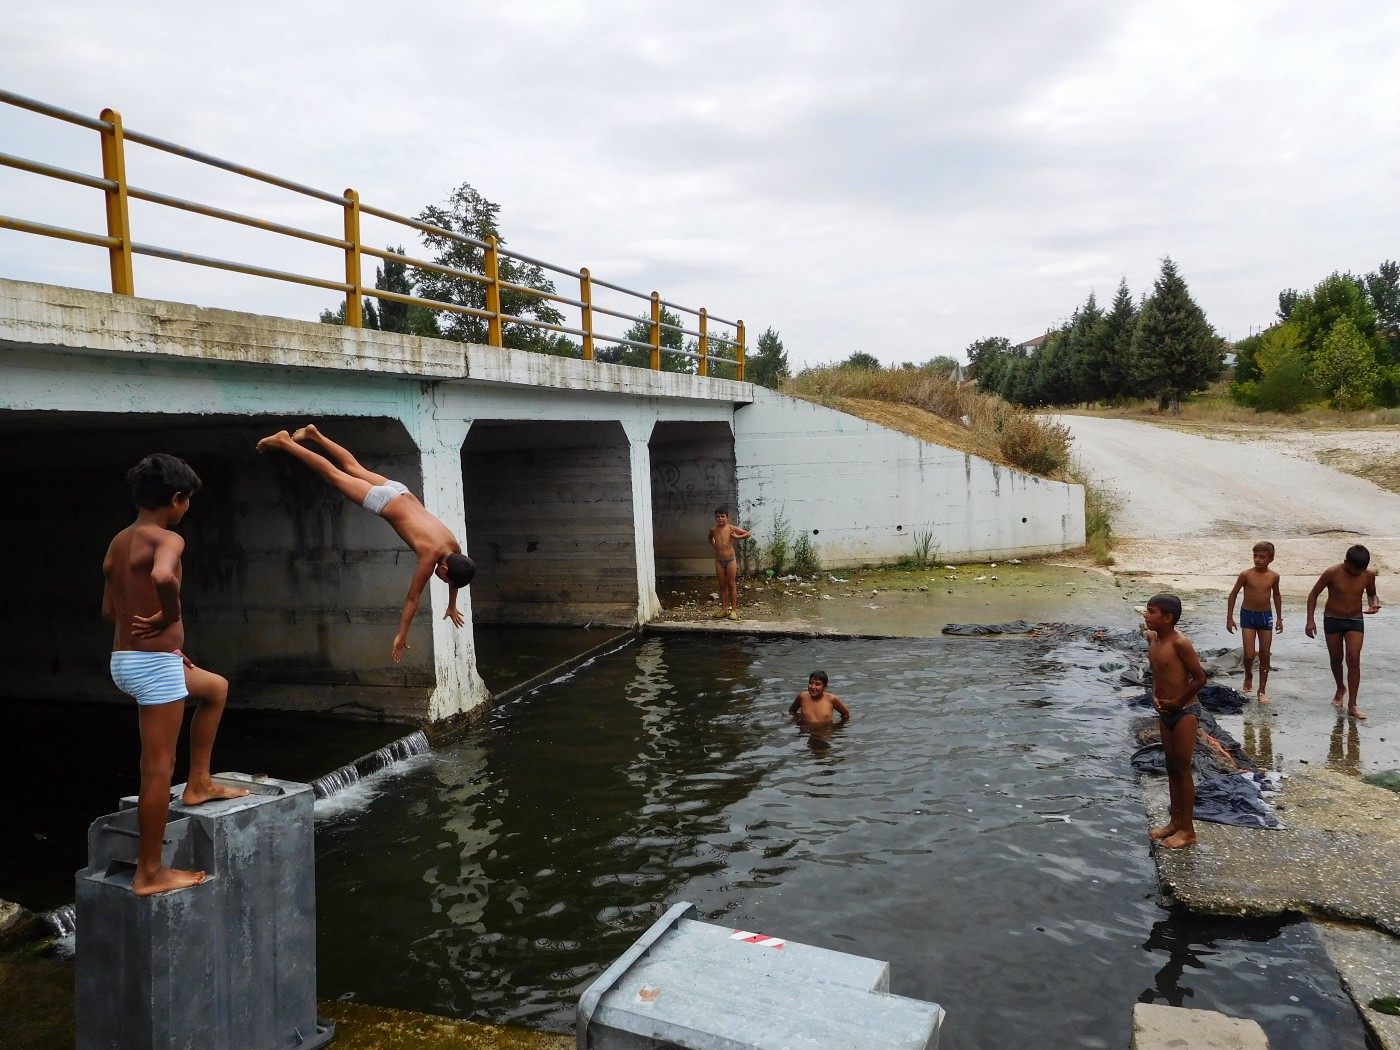 A group of boys swim and dive into the water by a bridge